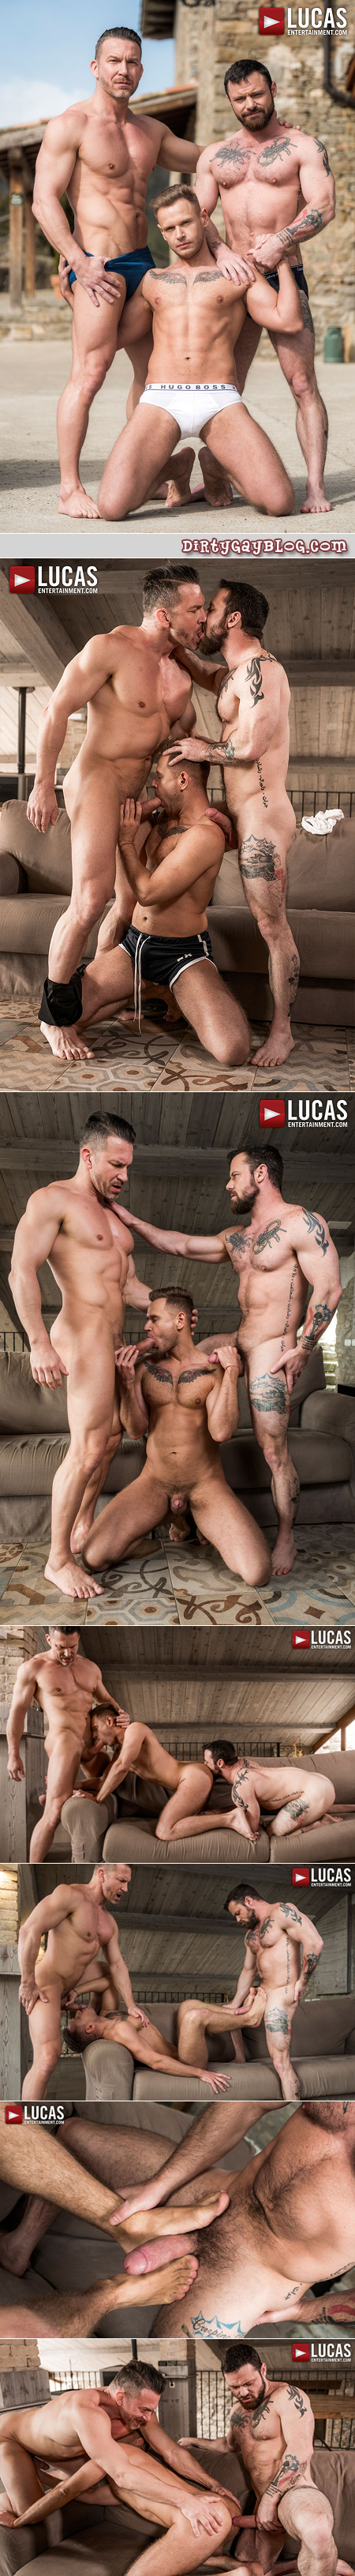 Muscular studs in a bareback gay sex threeway.